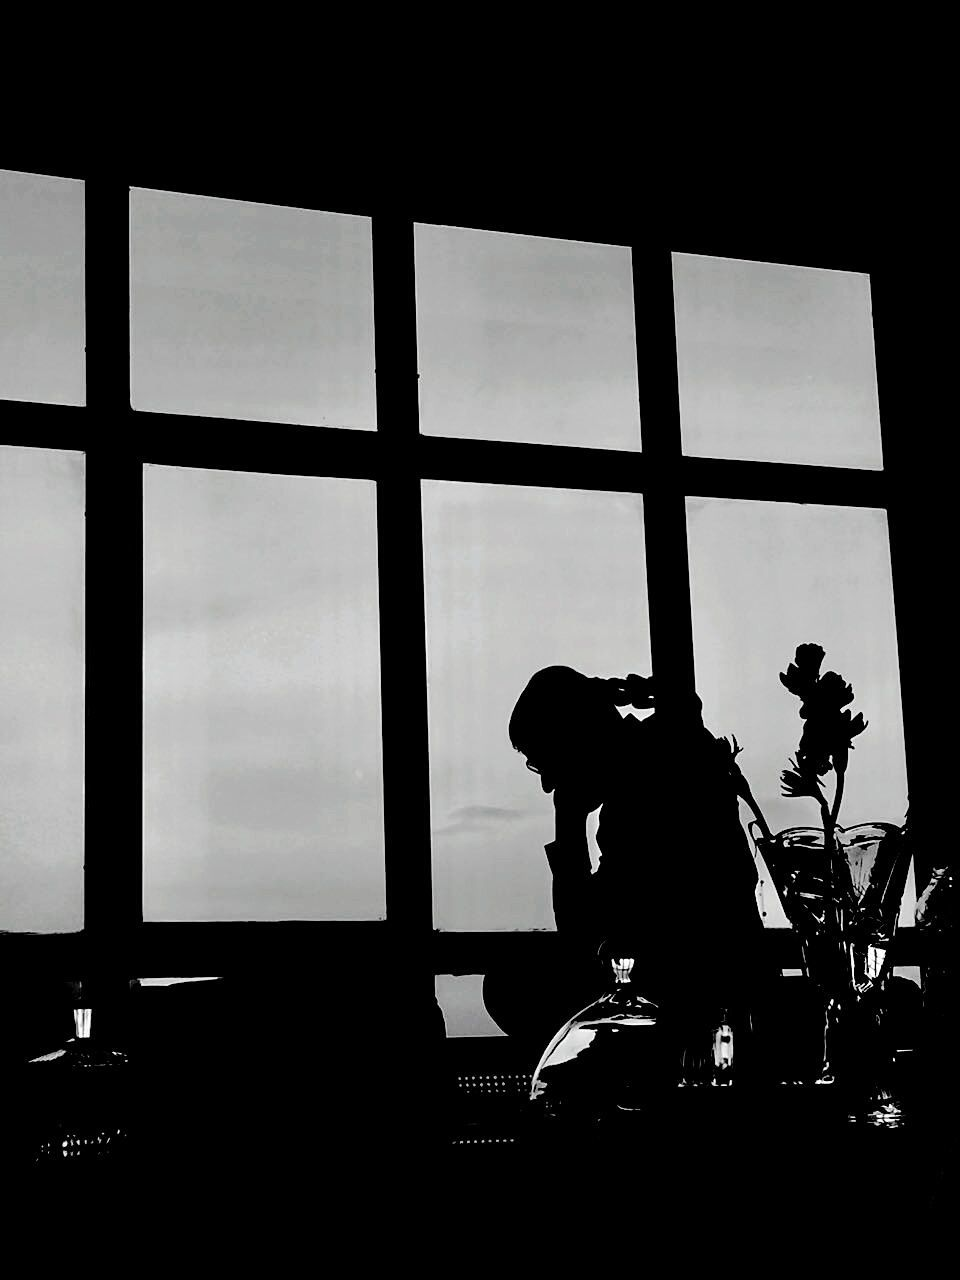 silhouette, real people, occupation, skill, indoors, window, arts culture and entertainment, sitting, men, one person, music, technology, performance, musician, sky, day, camera operator, people, adult